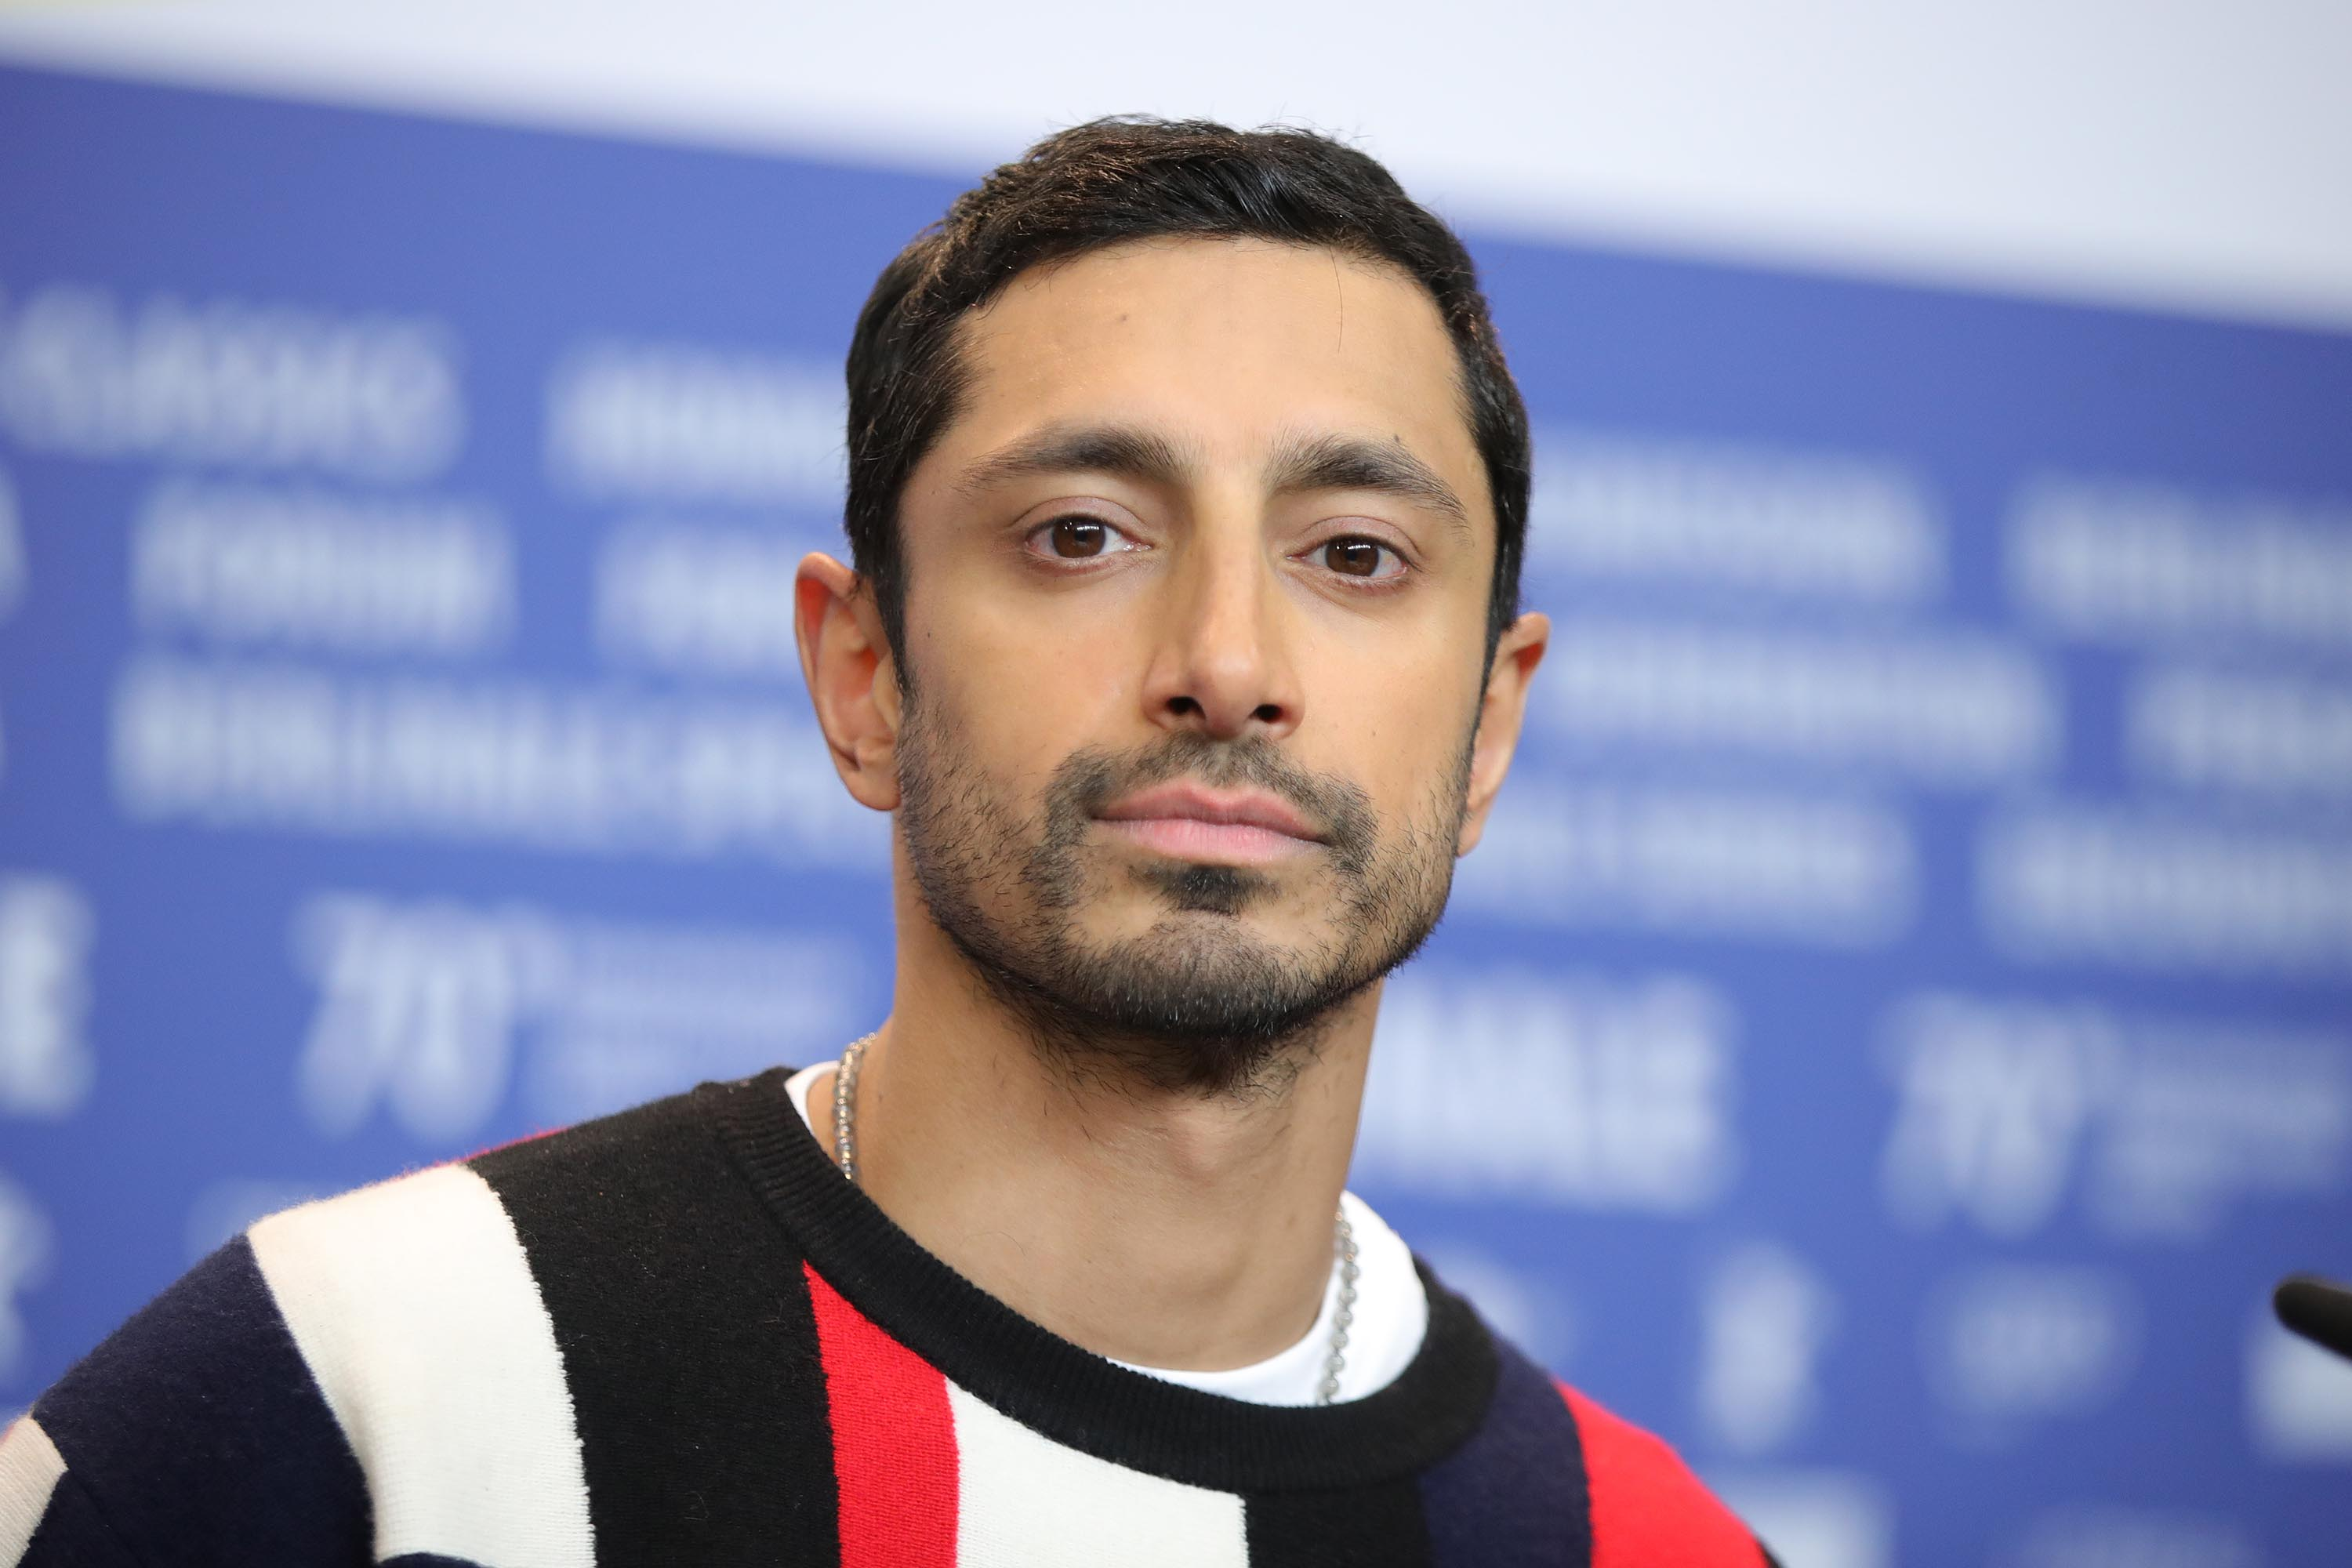 Riz Ahmed backs study that finds Muslims underrepresented in Hollywood